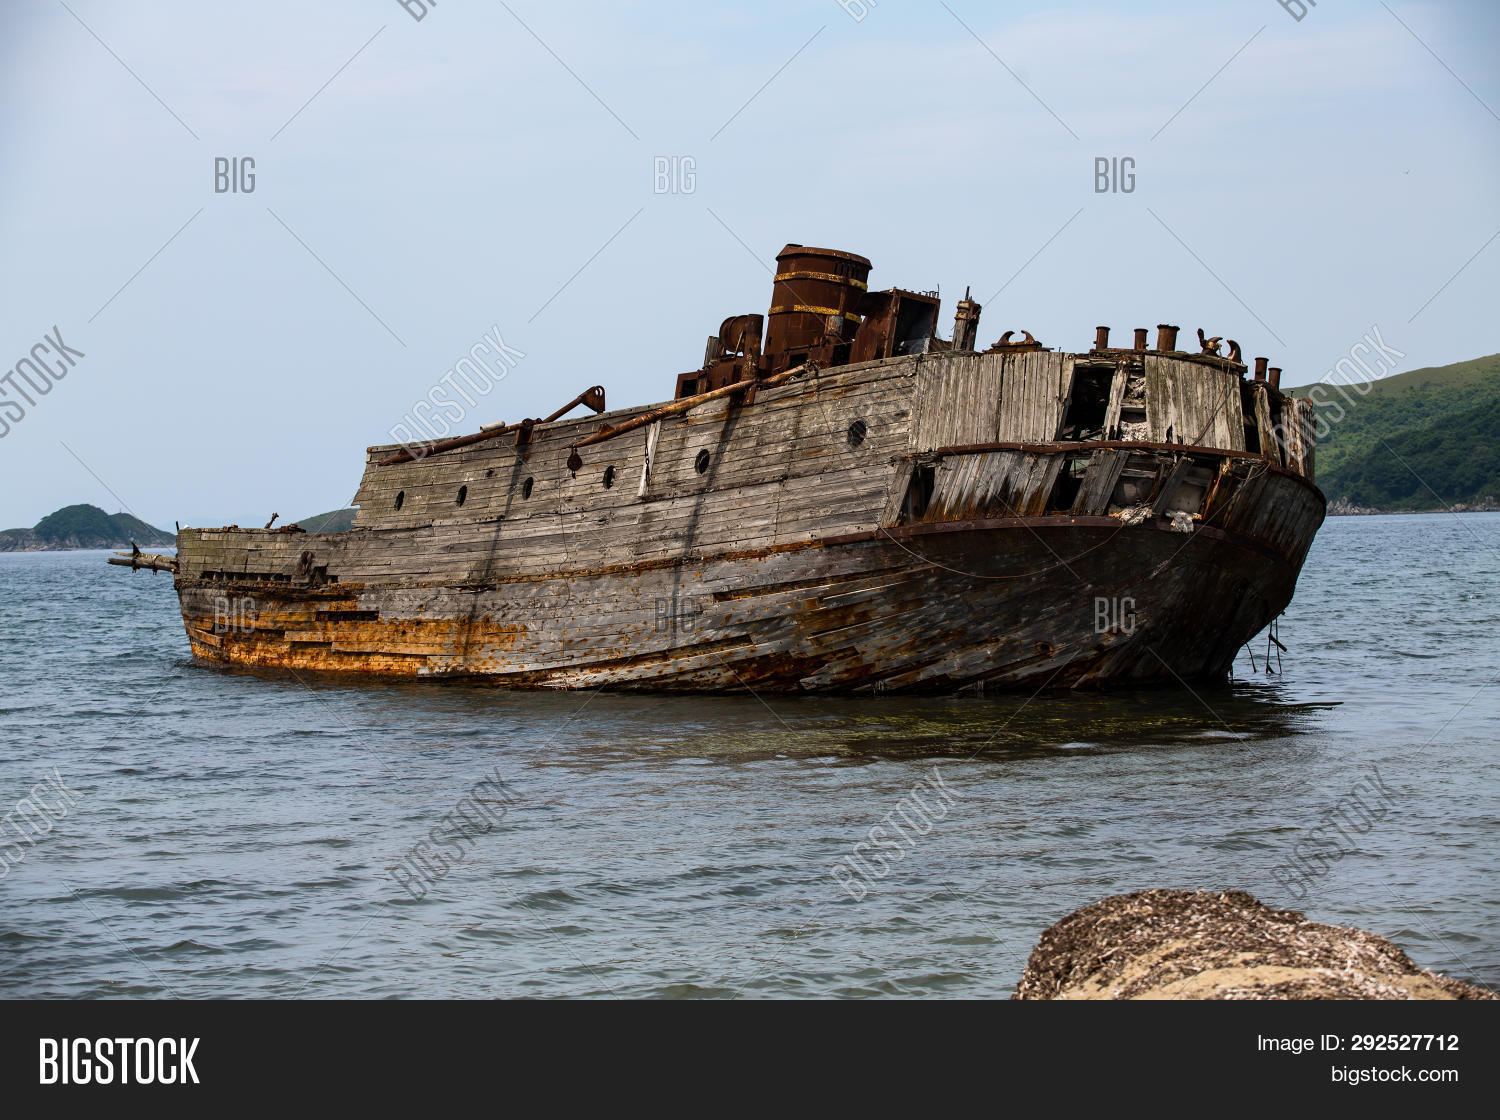 Remains Sunken Ship Image & Photo (Free Trial) | Bigstock